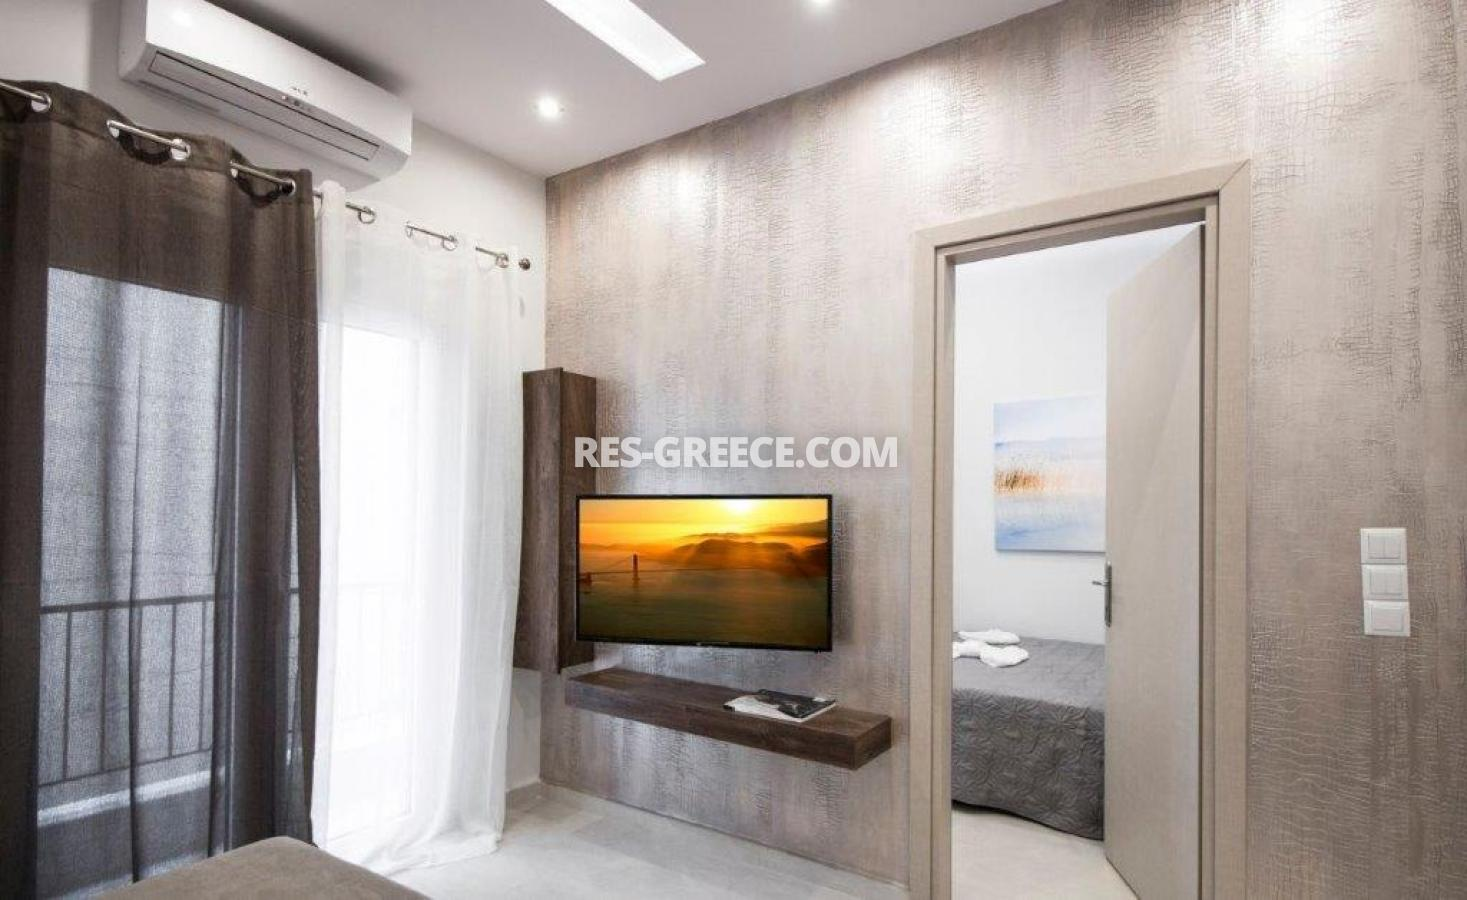 Germanou, Central Macedonia, Greece - apartments in Thessaloniki center for residence or long-term rent - Photo 4